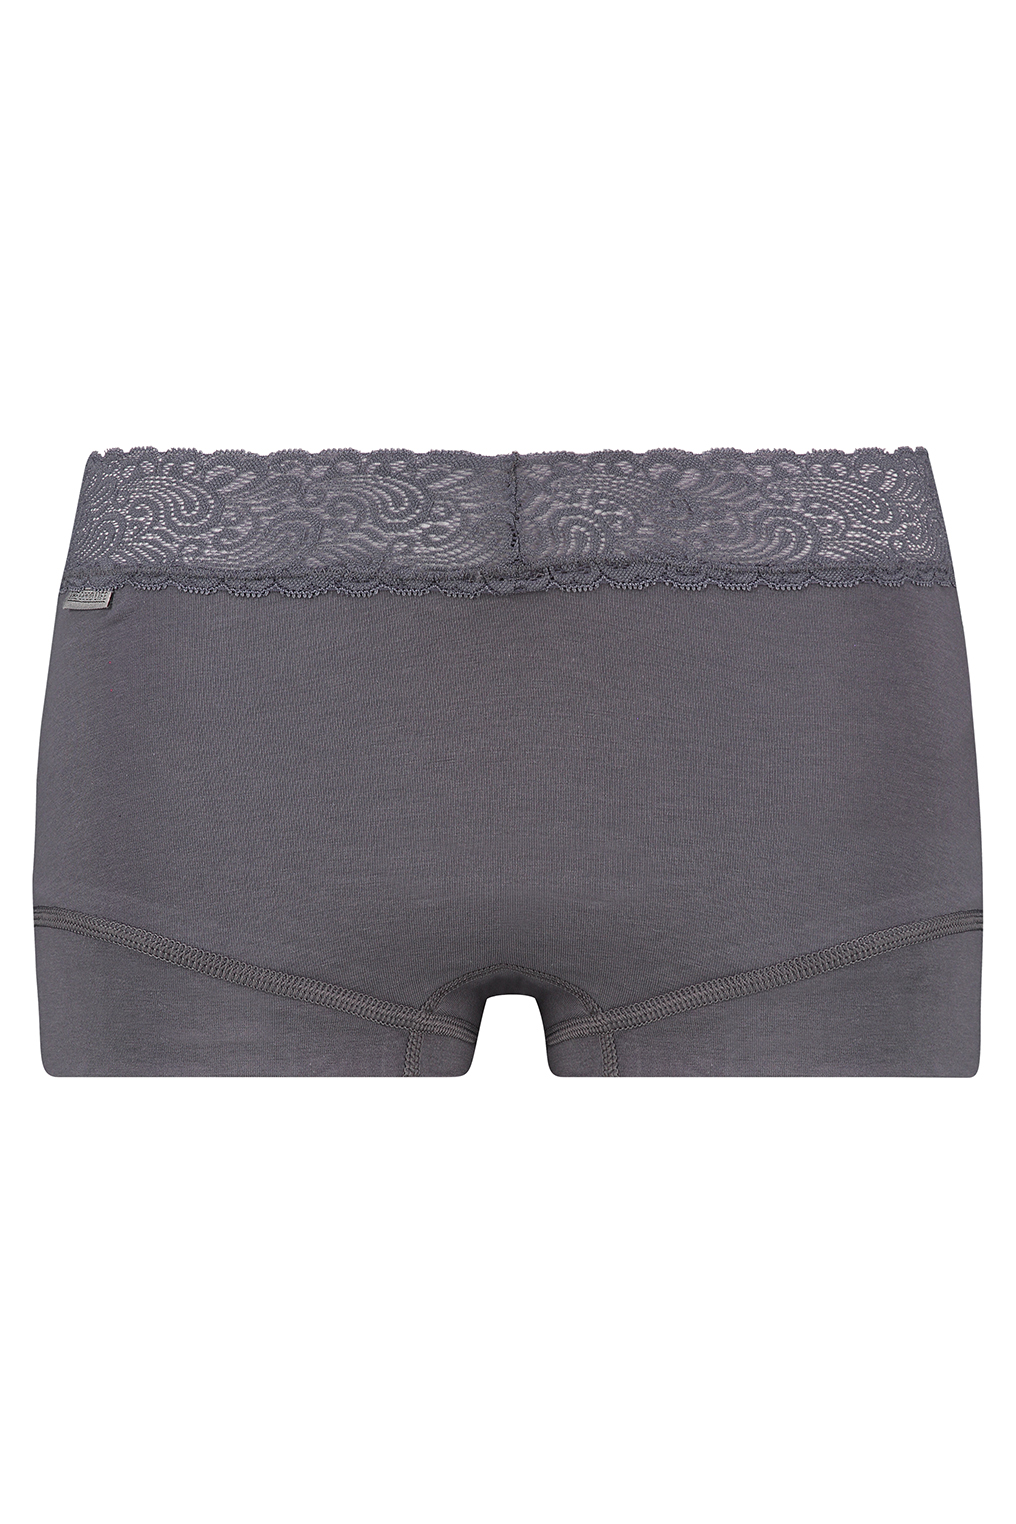 RJ Good Life Dames Short Lace